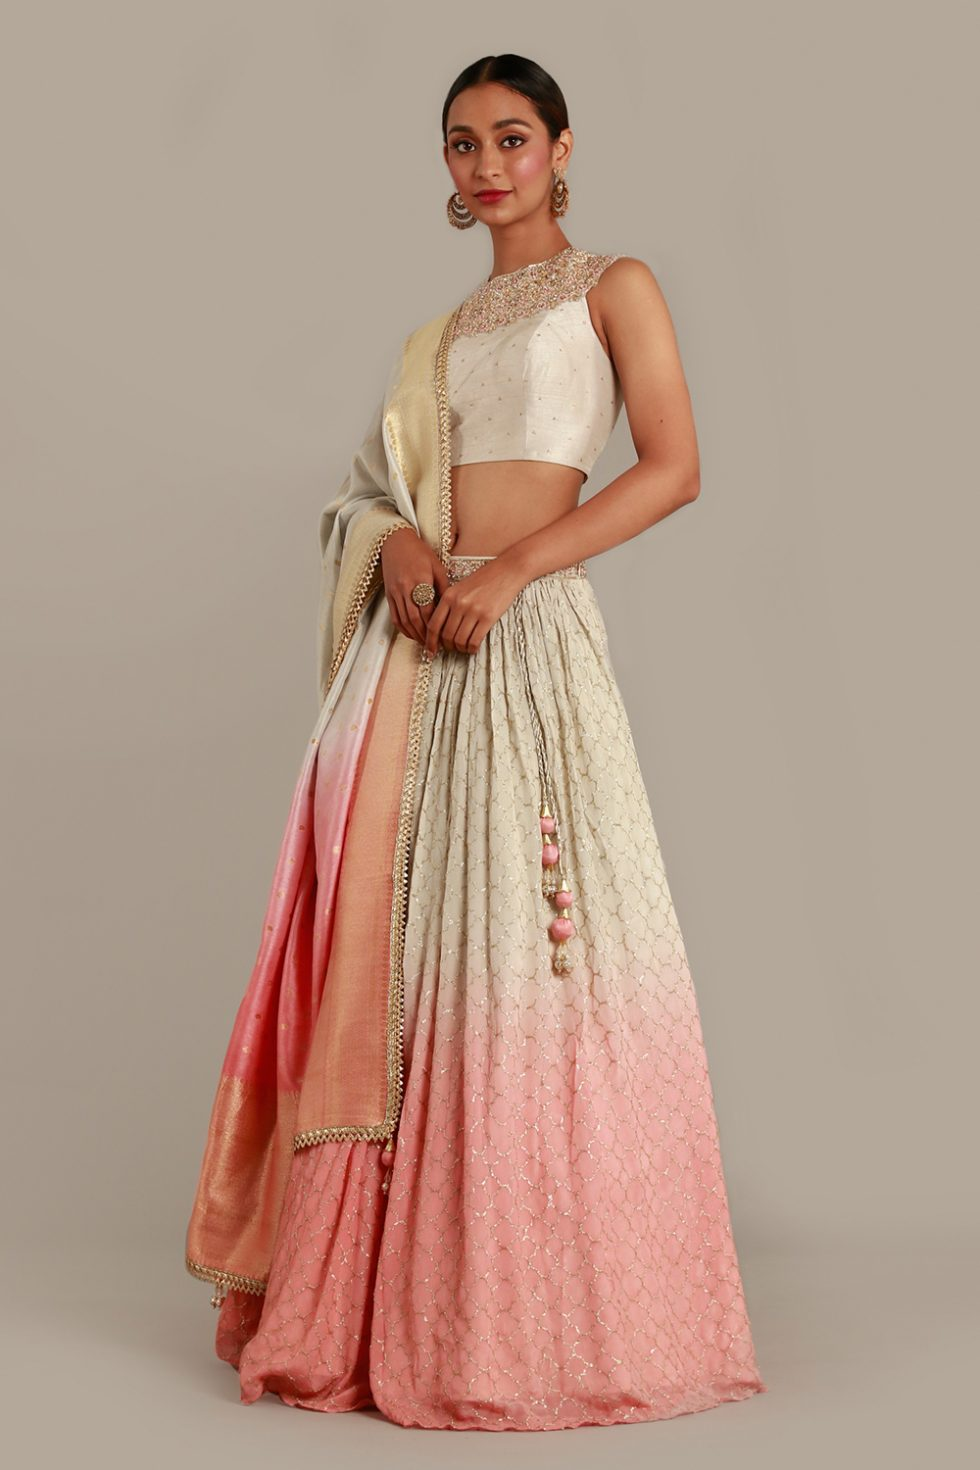 Off white ivory to pink ombré lehenga set with ombré Banarasi dupatta and matching cut out blouse with gold embellishments